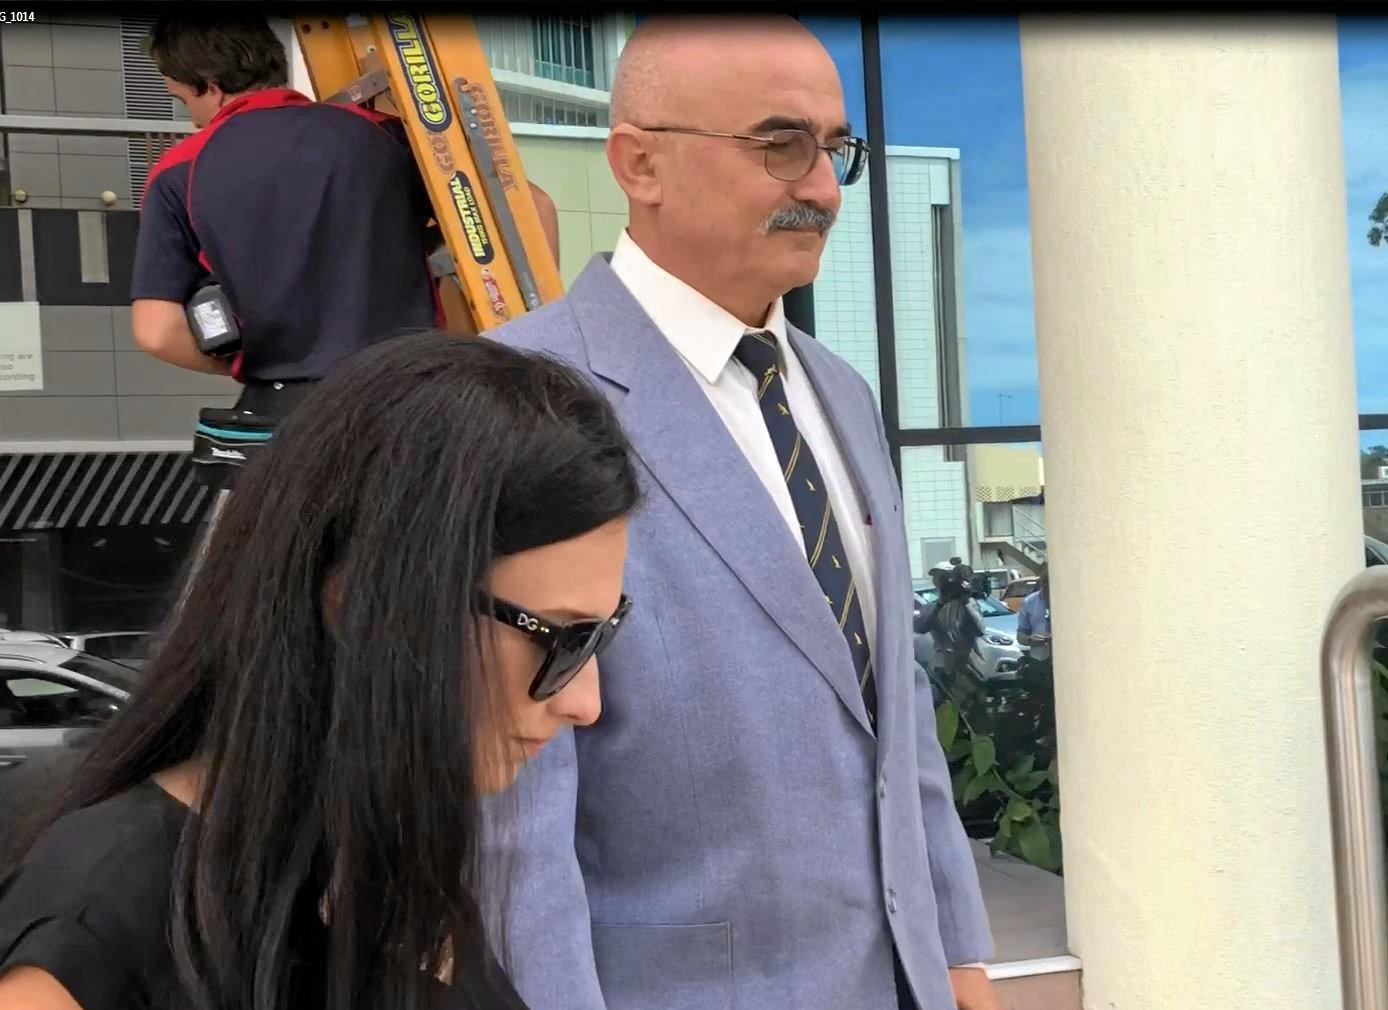 Zdravko Michael Pavlic-Sahin walked from the Maroochydore District Court today as his wife Fay Frances was jailed. He too was later sent to prison. He is supported by a woman believed to be his daughter.